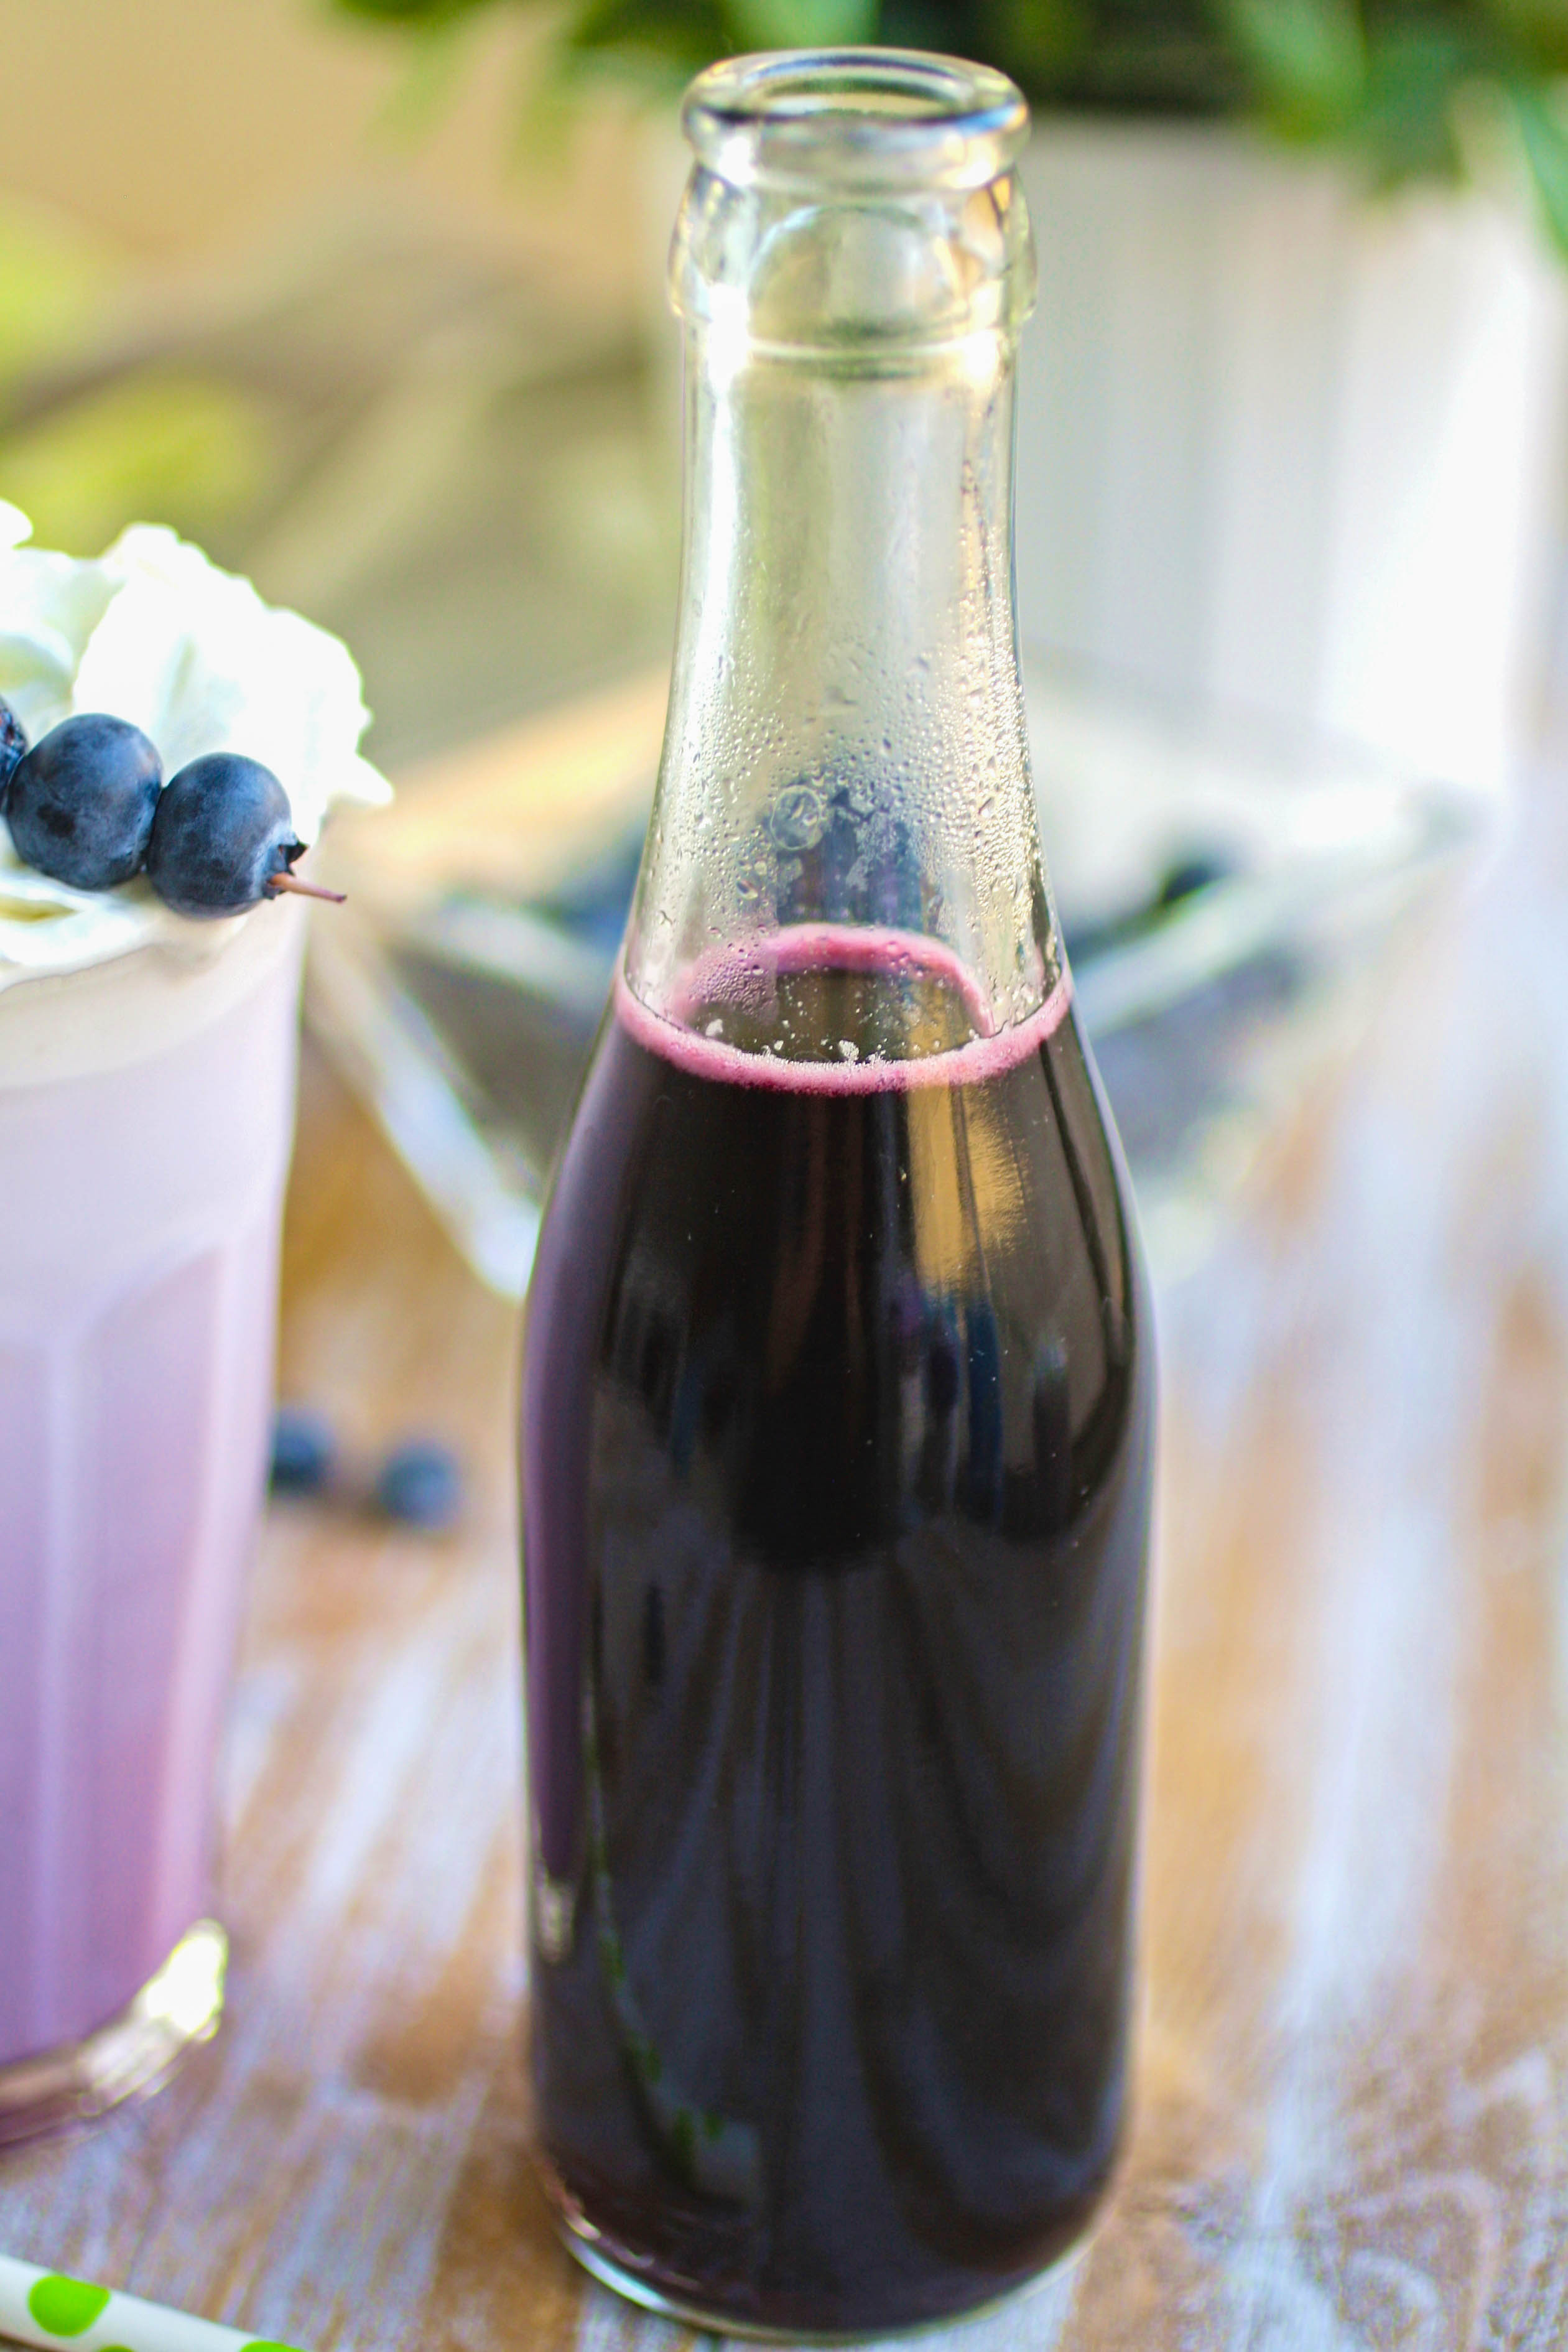 Blueberry Italian Cream Soda drinks are a treat, for sure! You'll love these Blueberry Italian Cream Soda drinks for their pretty color and flavor.